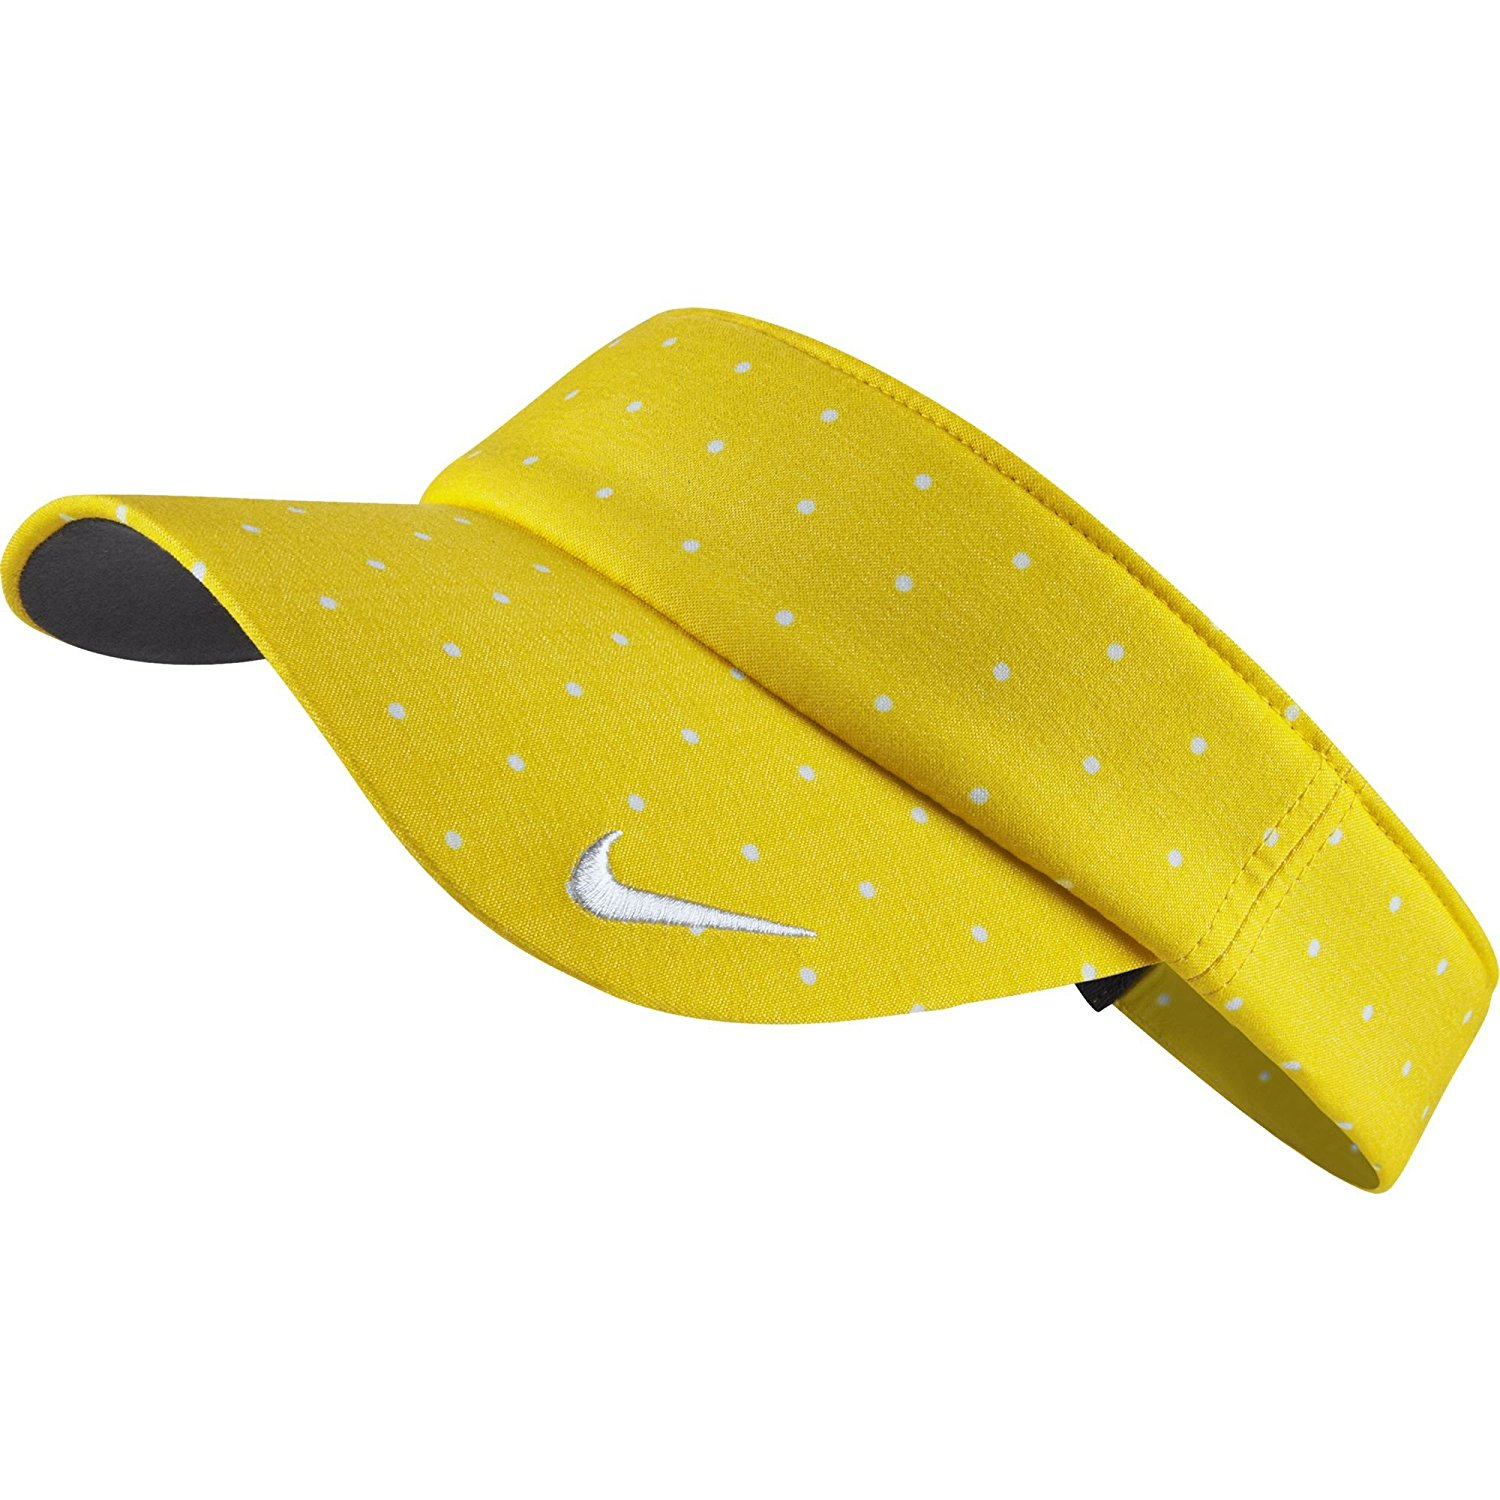 90a7ec172 Buy NIKE Mens Seasonal AW84 Running Hat in Cheap Price on Alibaba.com